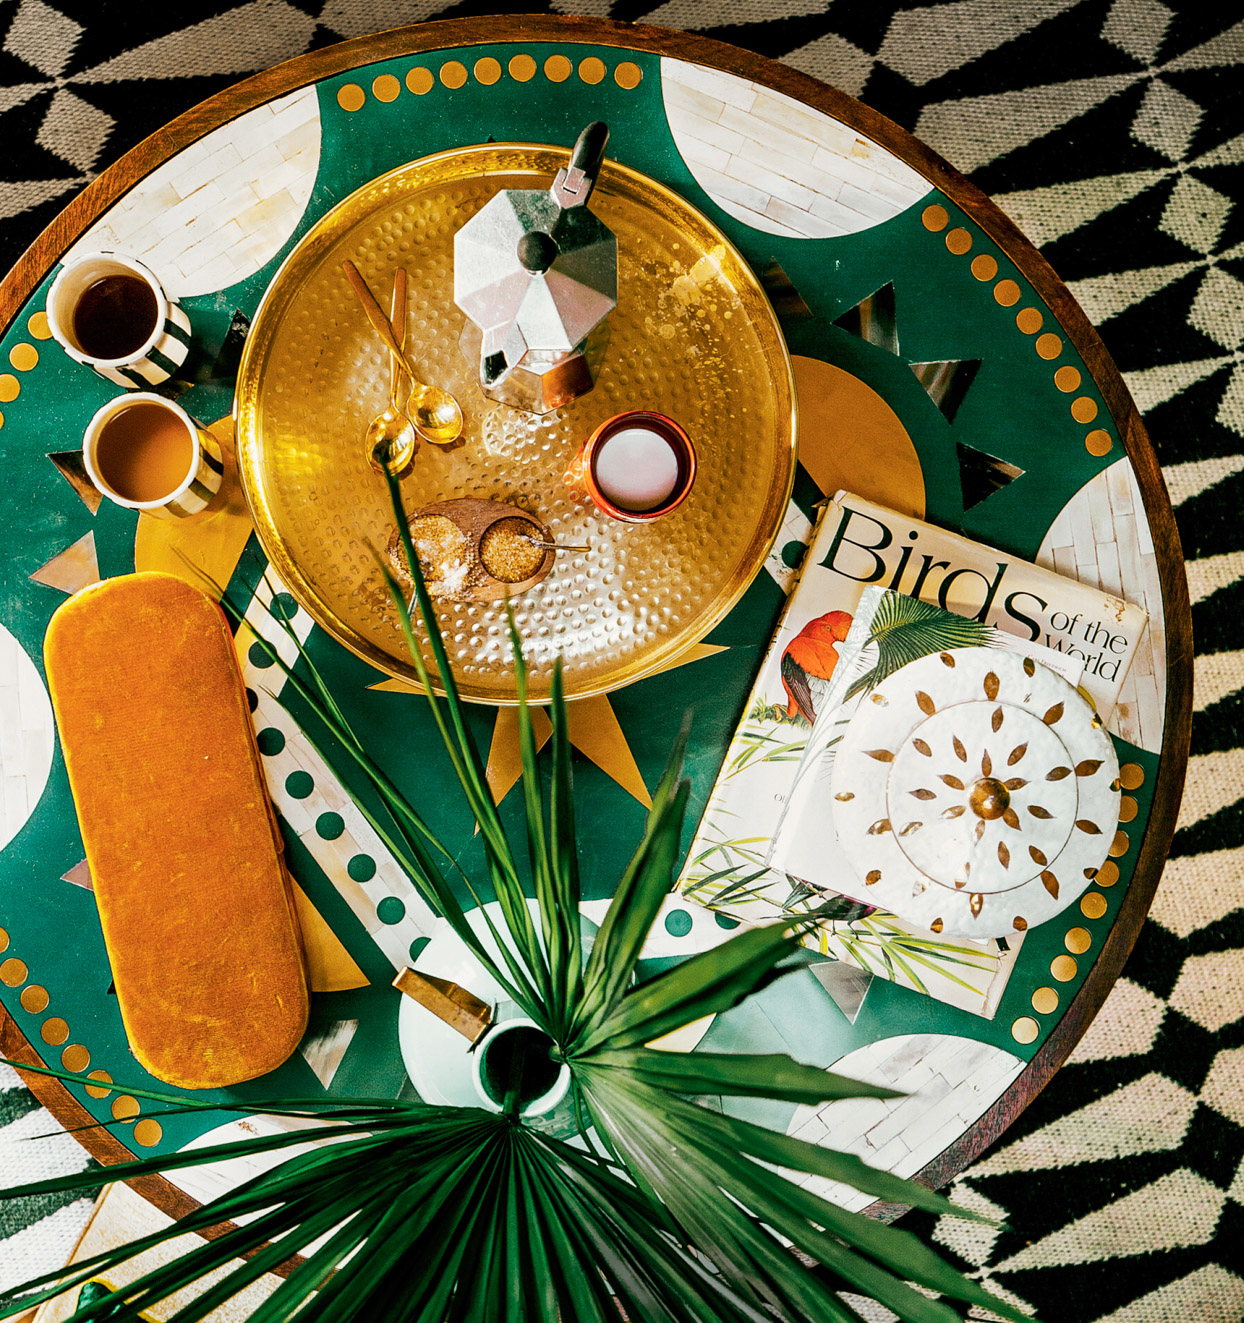 patterned table with golden tray and plant